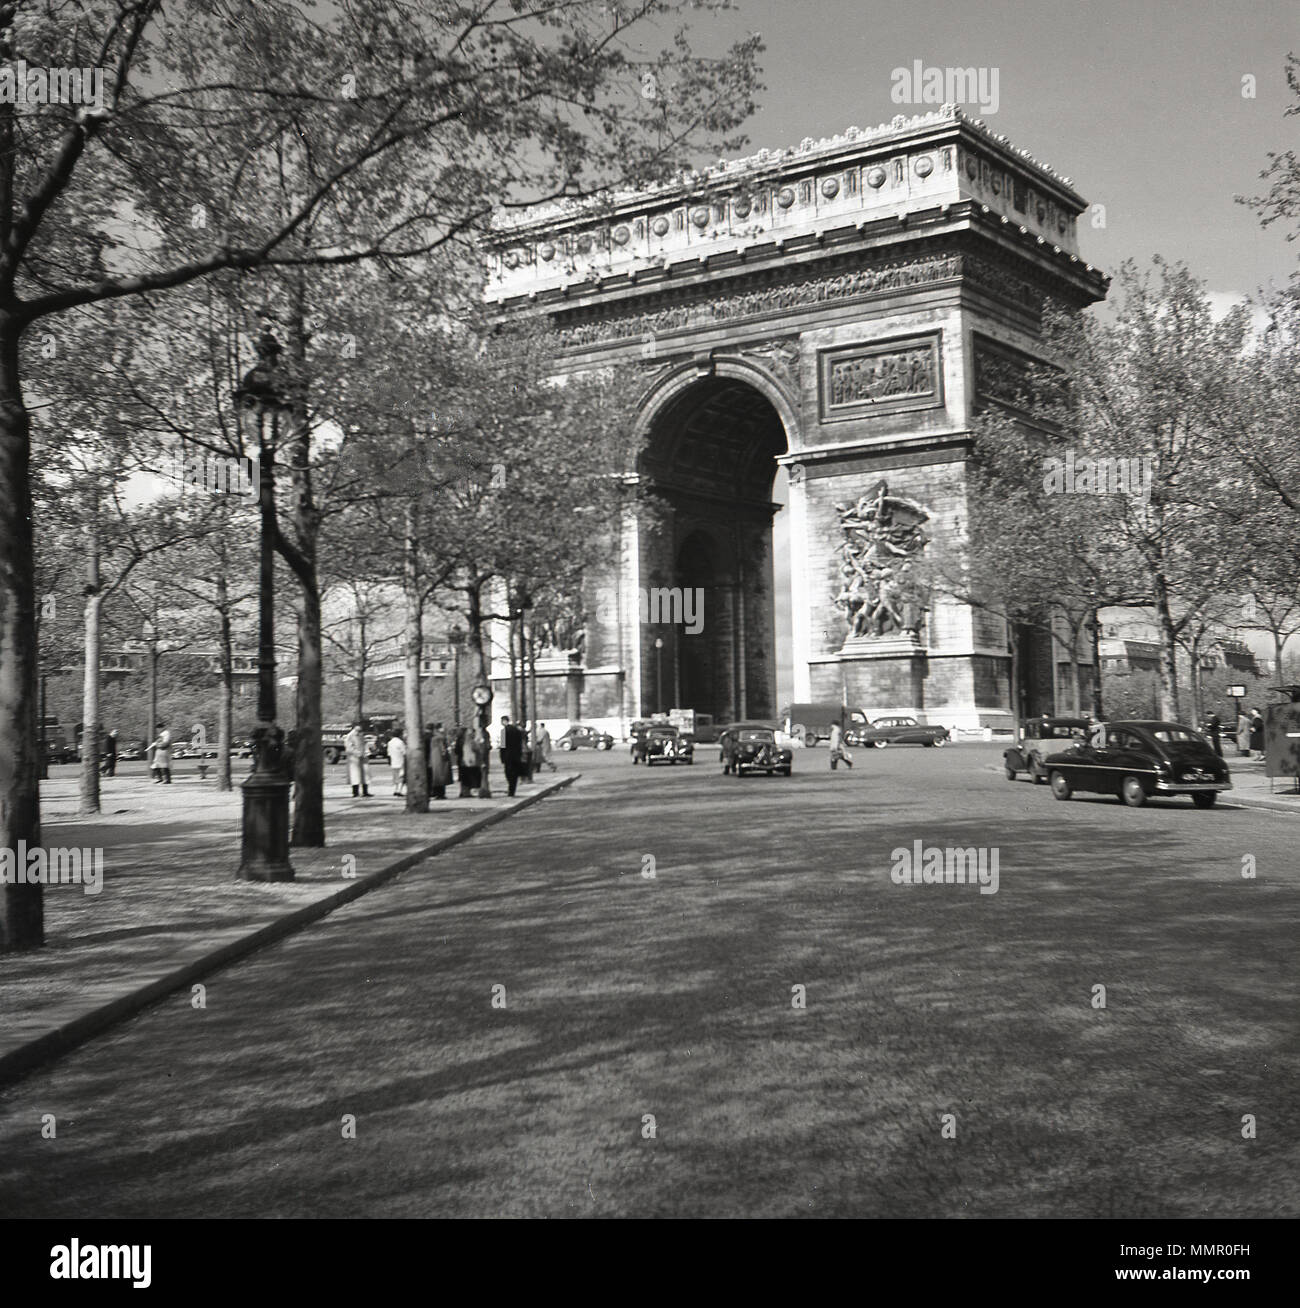 1950s, historical picture by J Allan Cash showing vehicles of the day at the famous french landmark, Arc de Triomphe, located by Etoile and the Avenue des Champ Elysees. The impressive monument was built to celebrate the military victories of Napoleon and the French army and was completed in 1836. - Stock Image